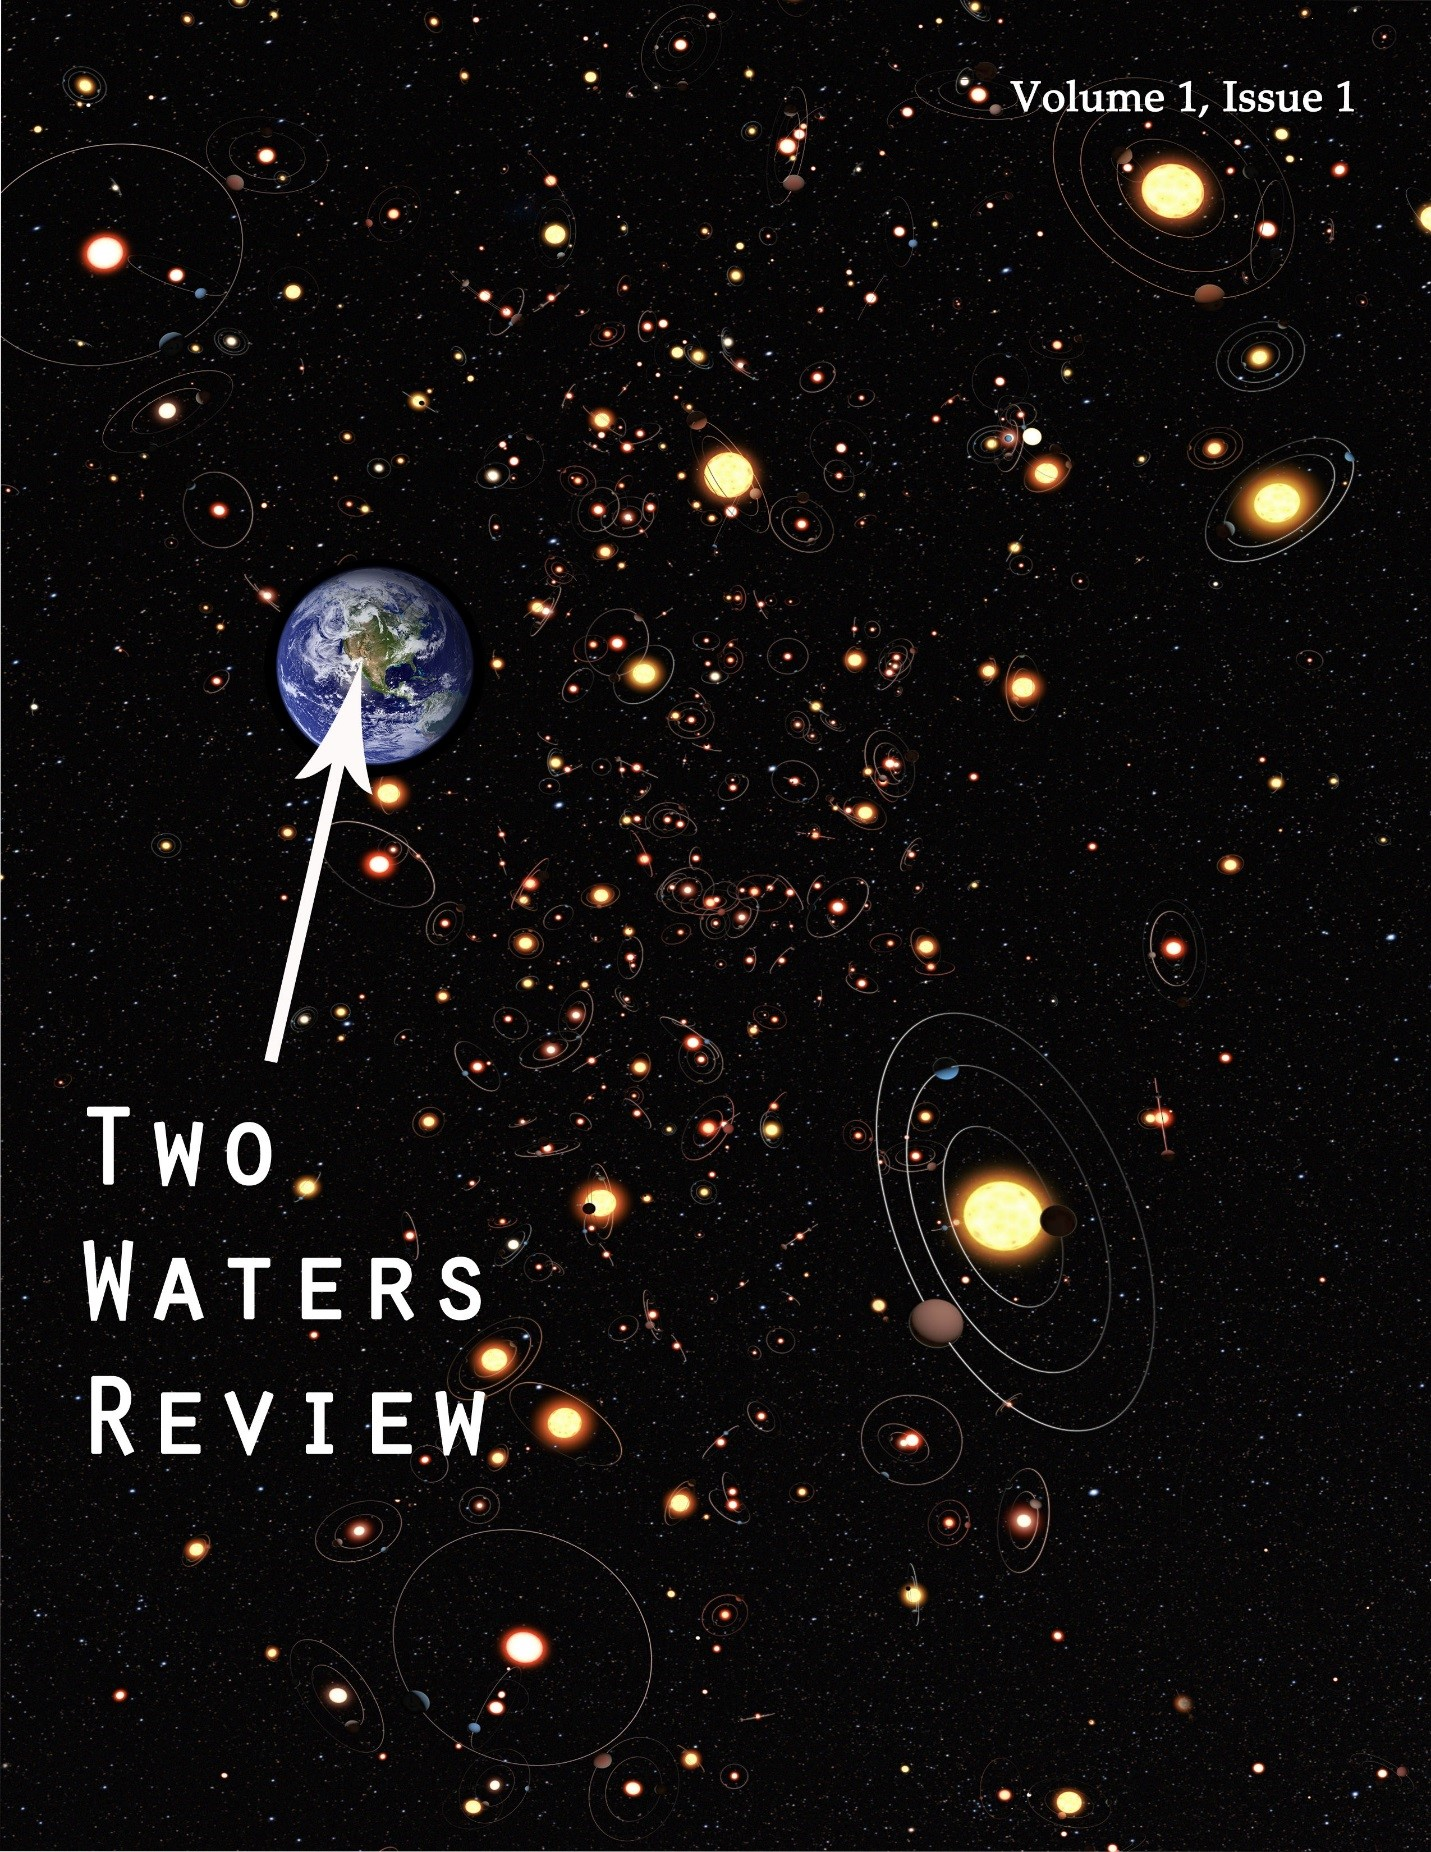 """Two Waters Review cover image of Earth against a starry sky and an arrow pointing to earth with the words """"Two Waters Review"""""""